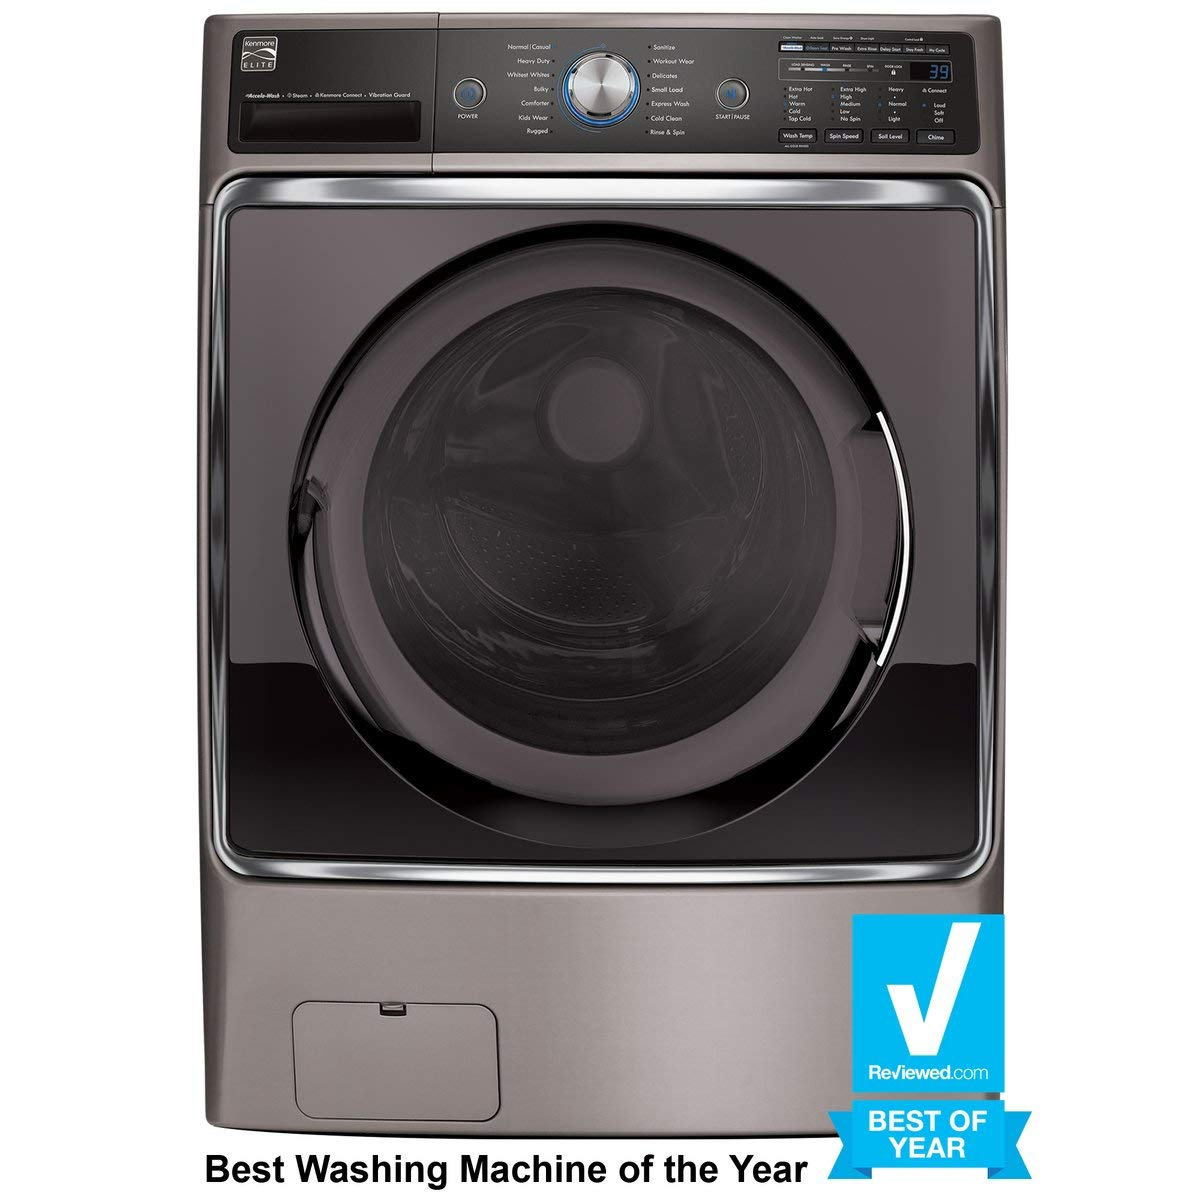 Top Loader vs Front Loading Washing Machine